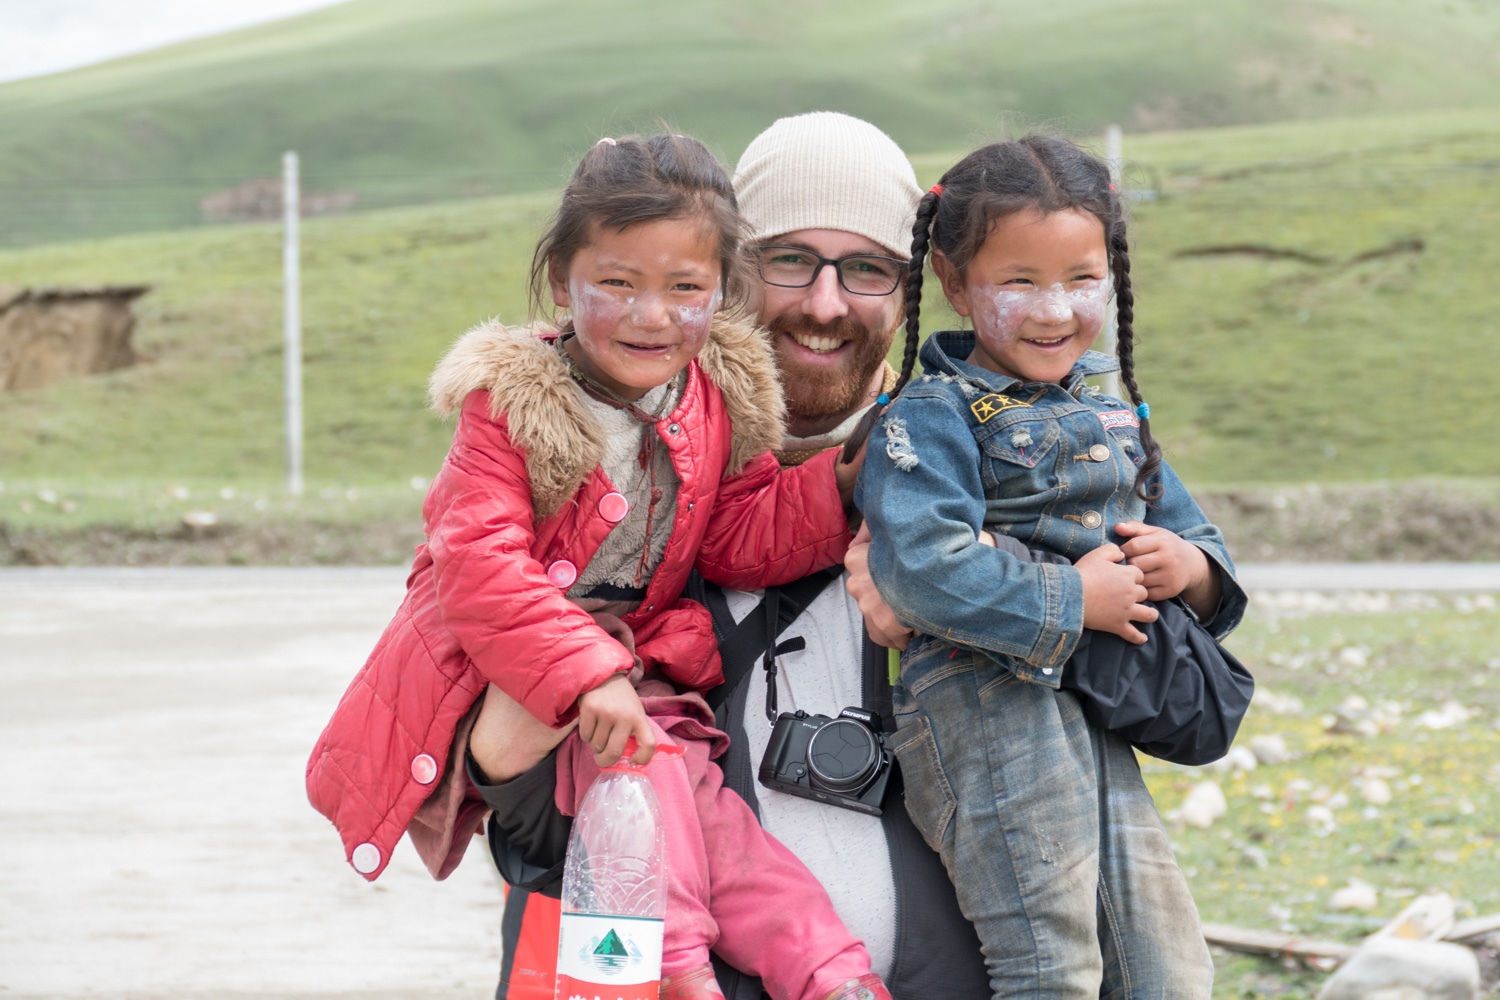 Friendly Tibetan children